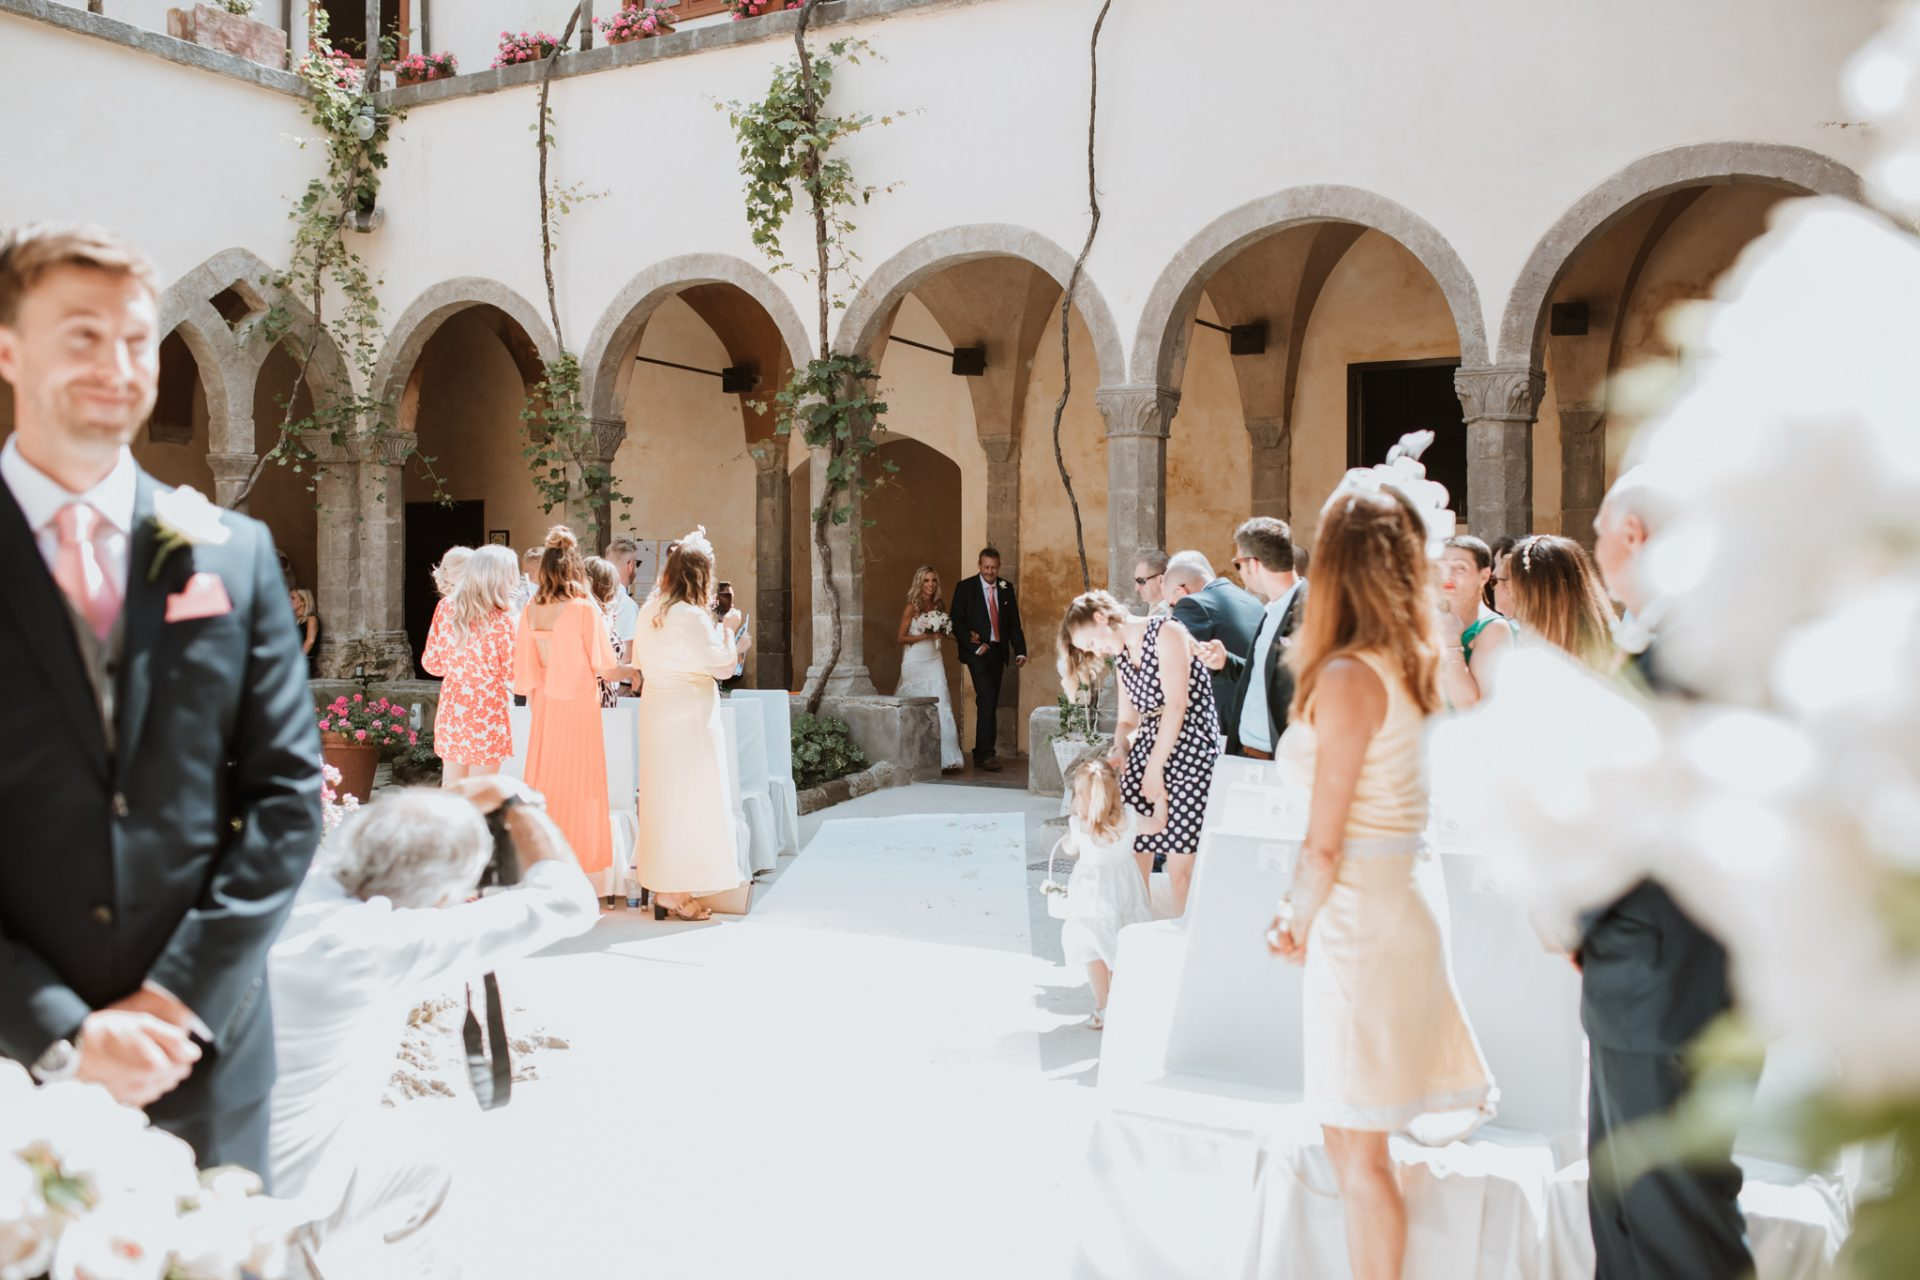 bride walking down the aisle with her father sorrento cloisters chiostro di san francesco